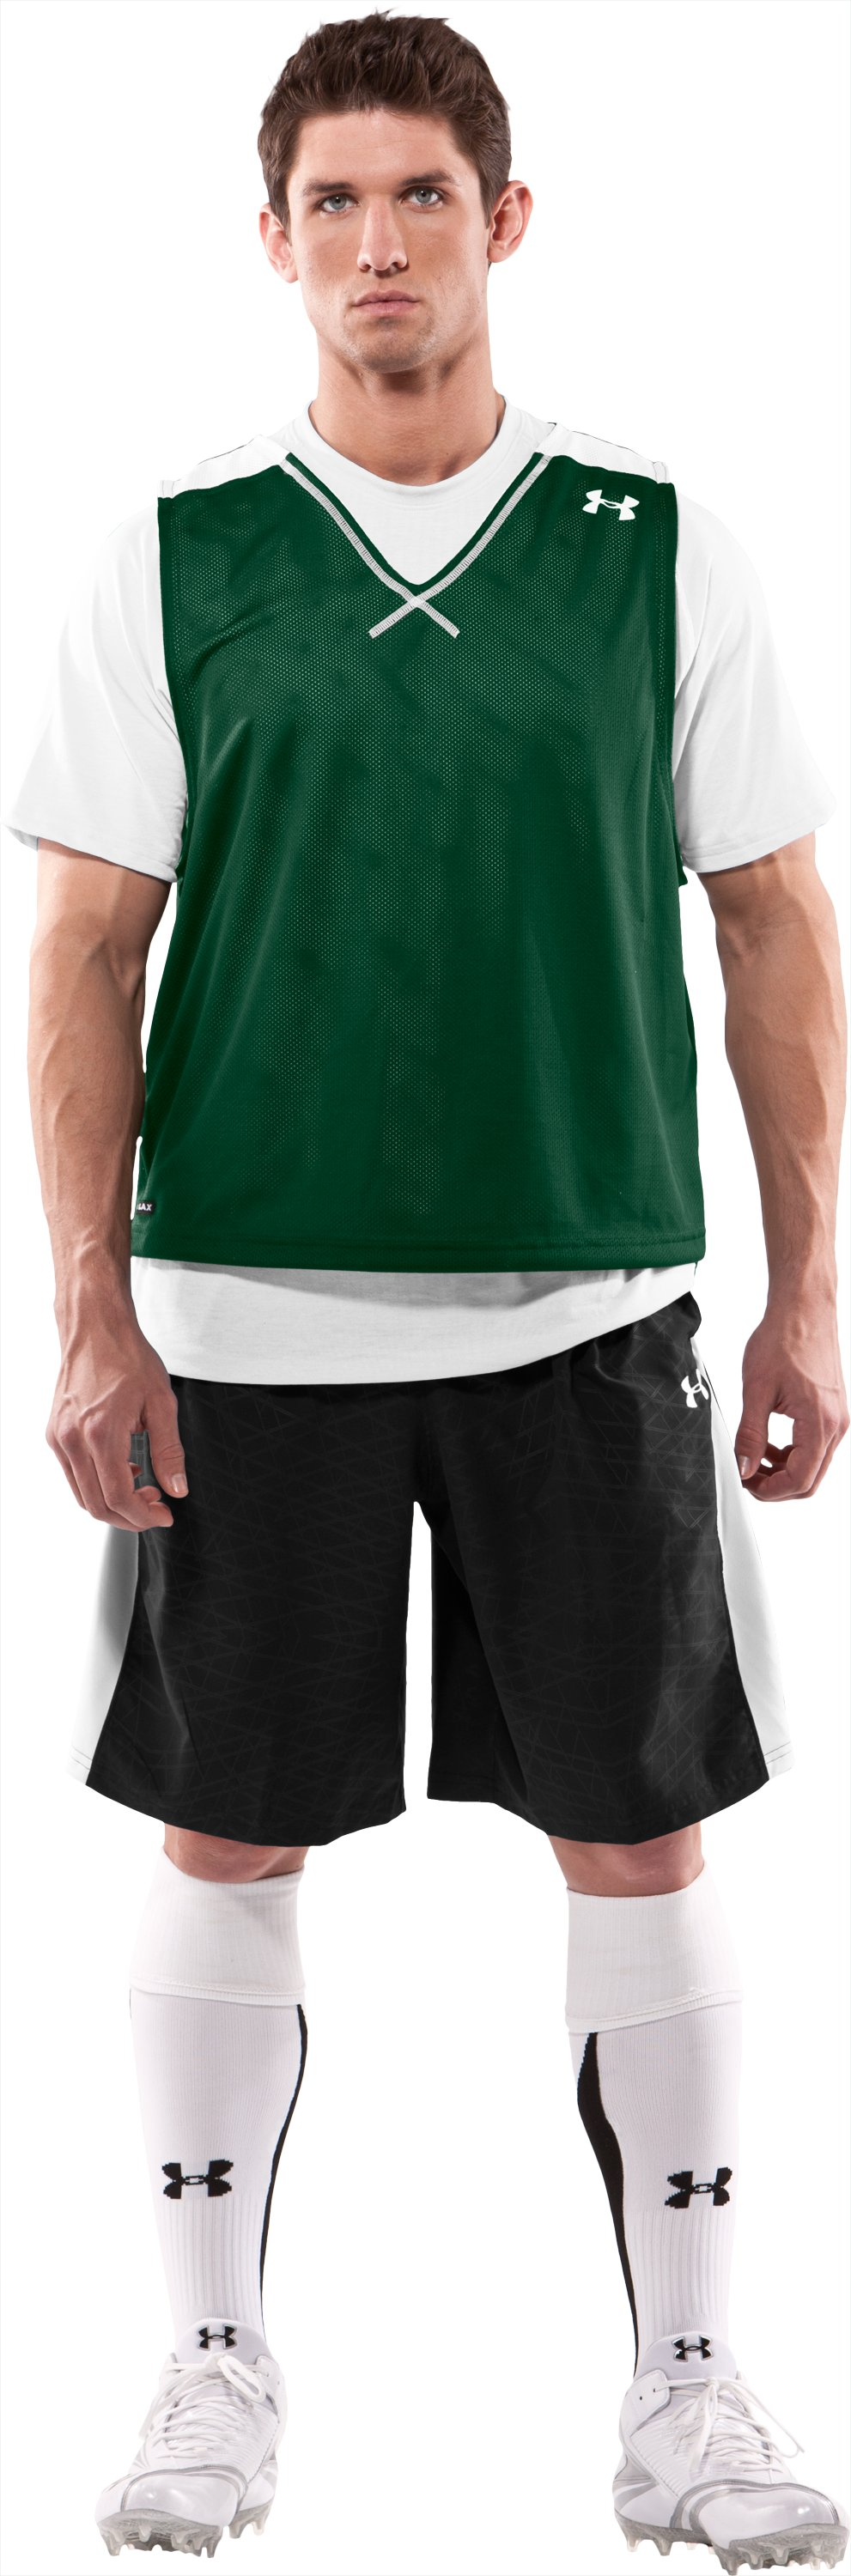 Men's Practice Jersey, Forest Green, Front